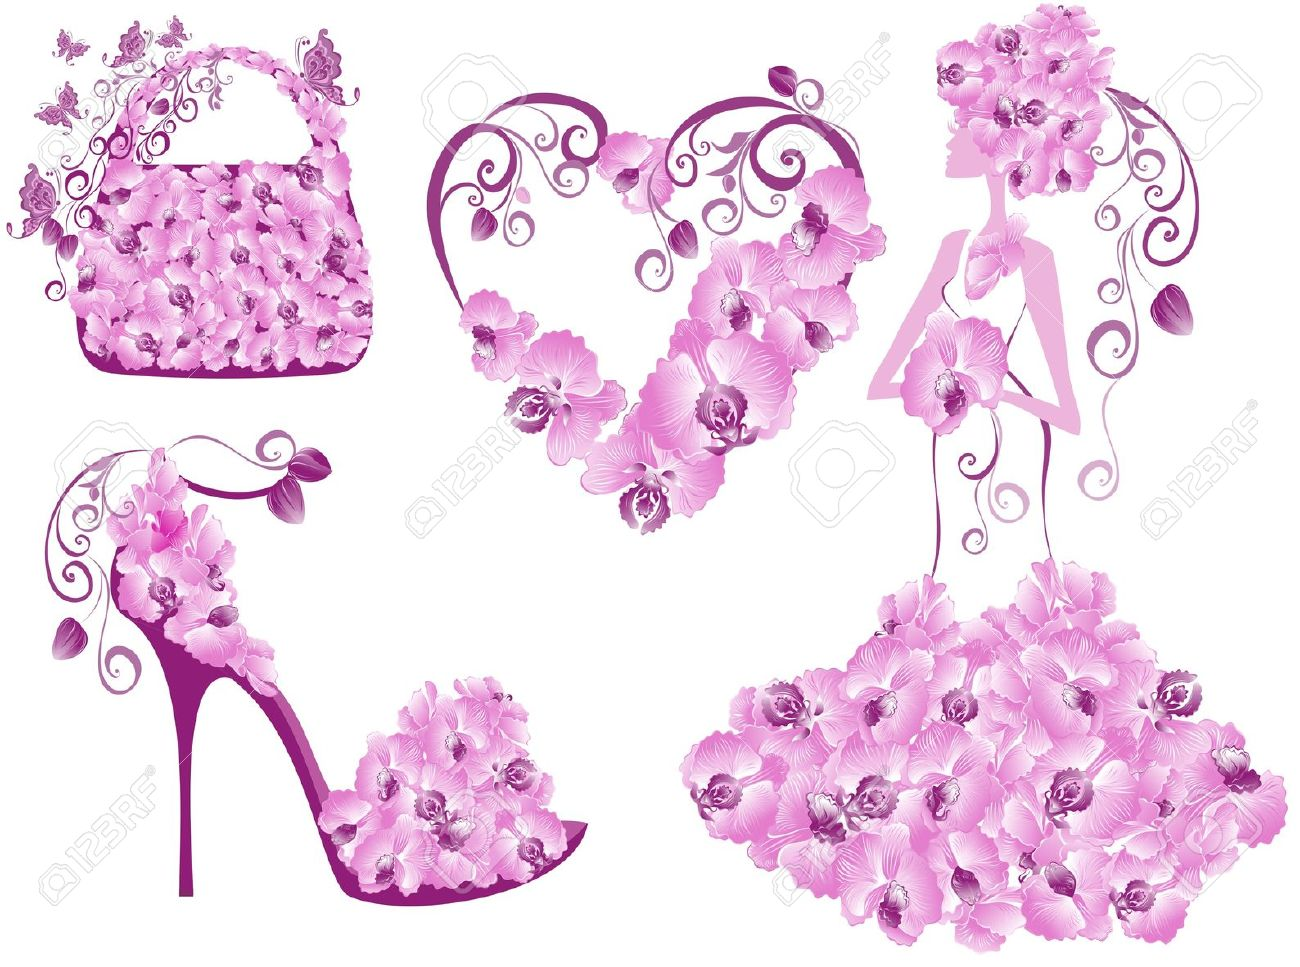 Fashion Women Accessories Collection Royalty Free Cliparts.